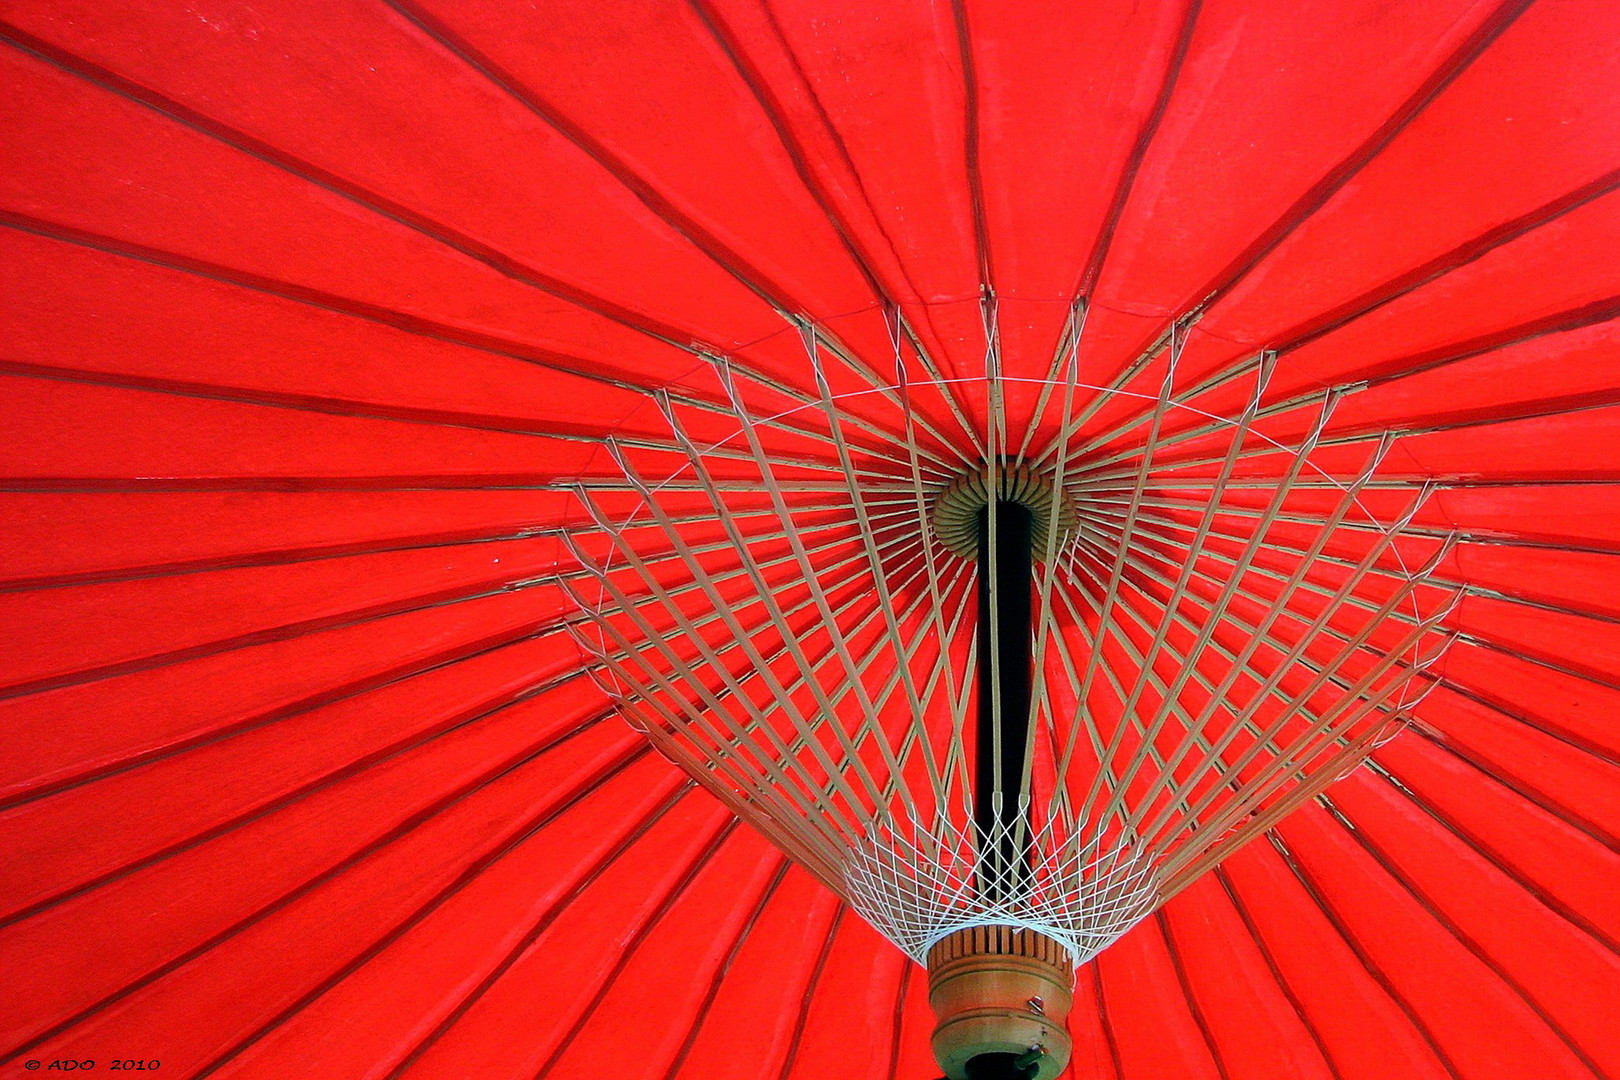 Under the Chinese Umbrella